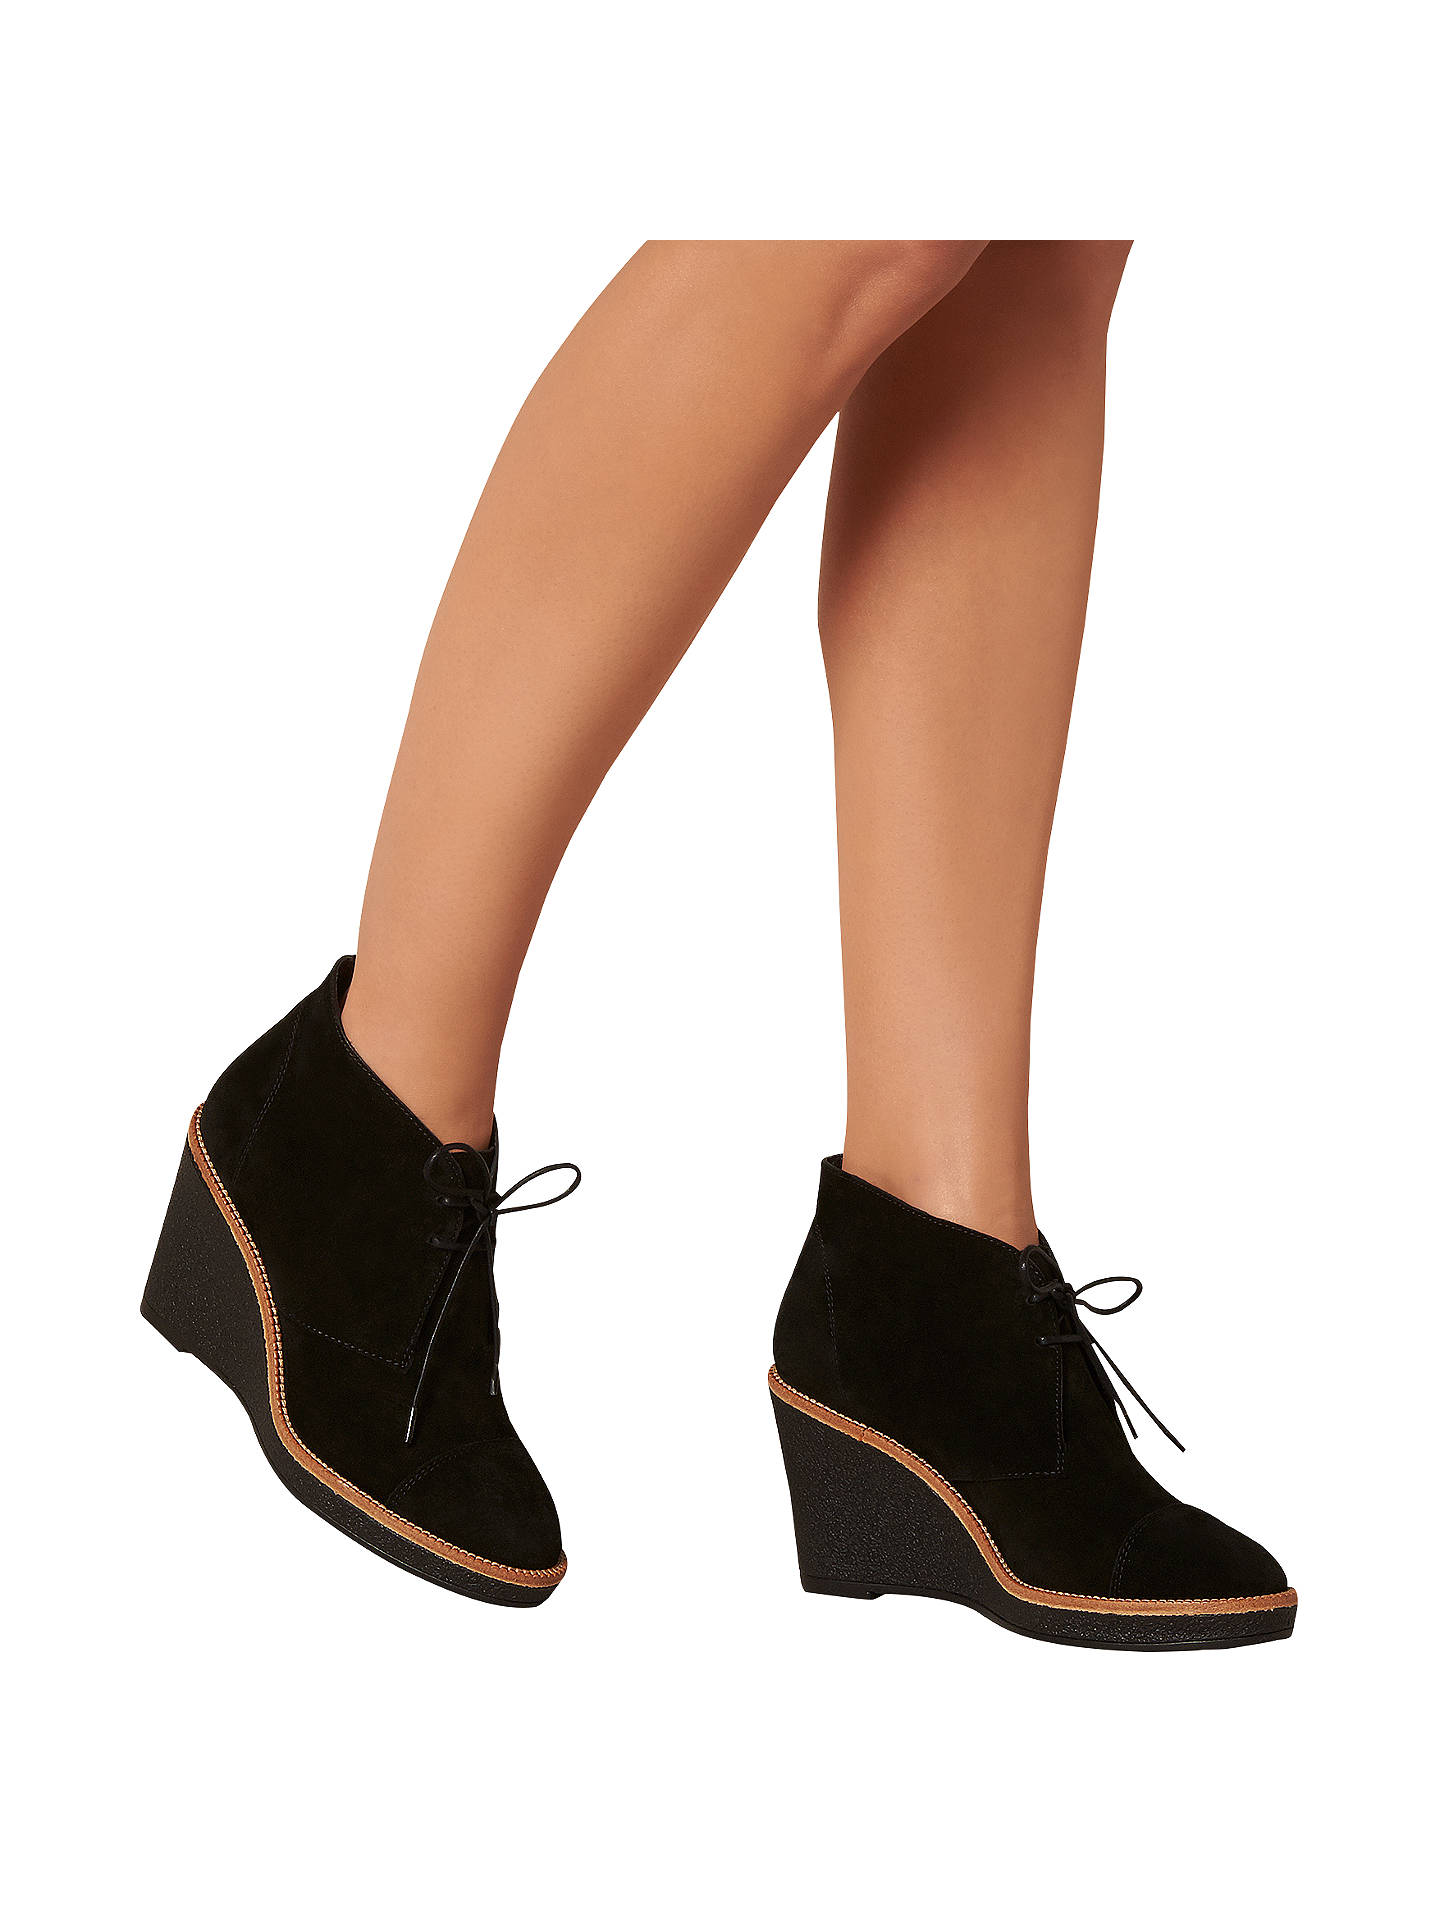 27f633a2b43 ... Buy L.K. Bennett Madi Wedge Heeled Ankle Boots